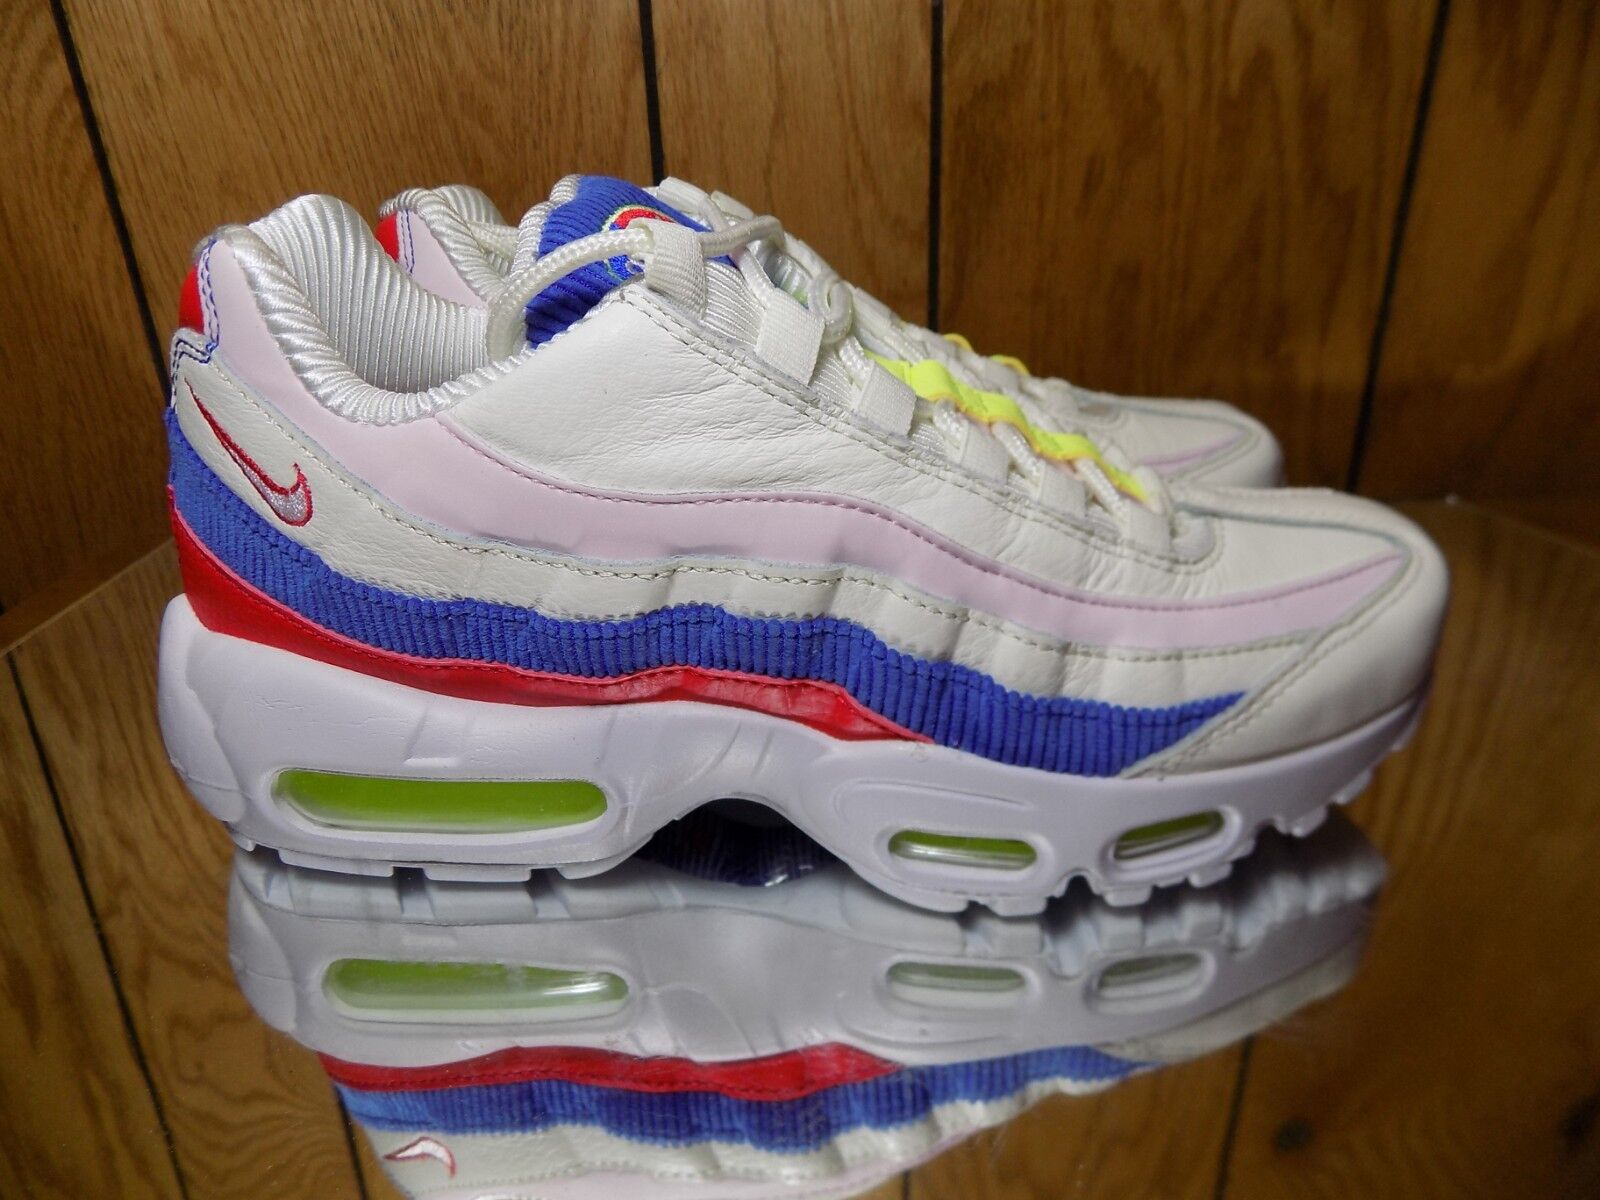 Nike Air Max 95 SE Panache Womens Sz 7.5 AQ4138-101 Sail Pink bluee Red shoes NEW